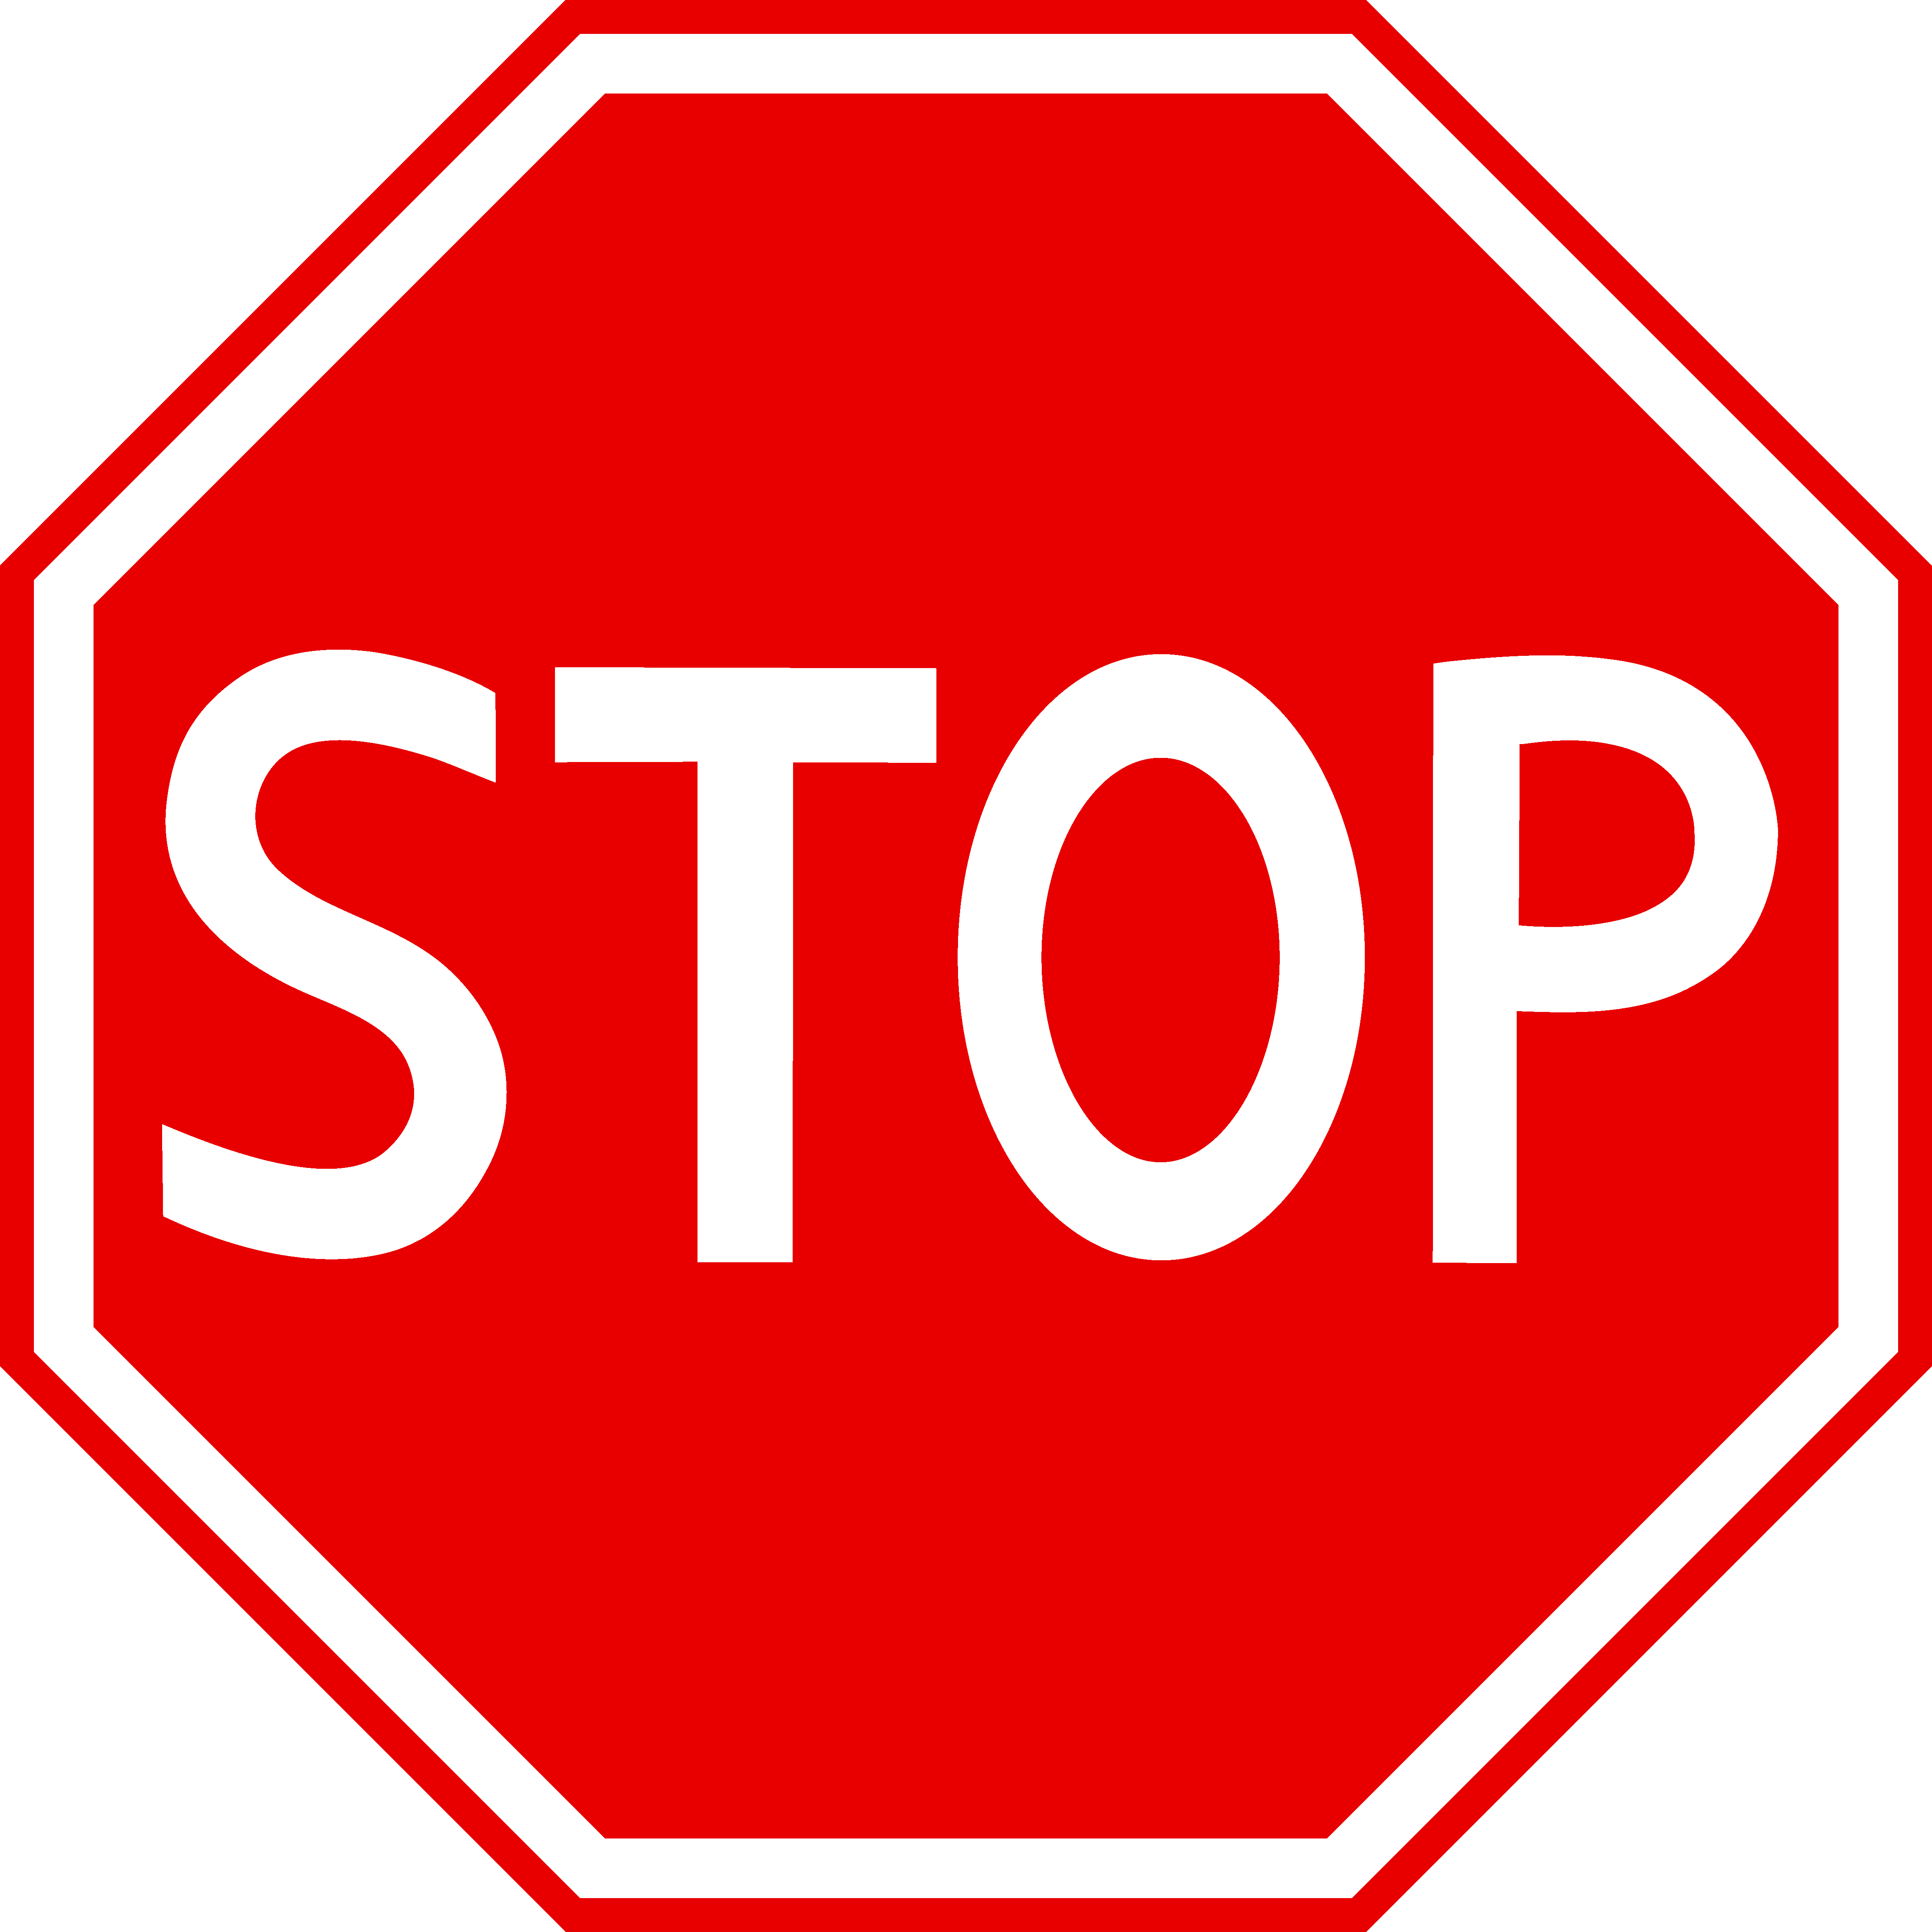 Stop clipart. Red sign free clip